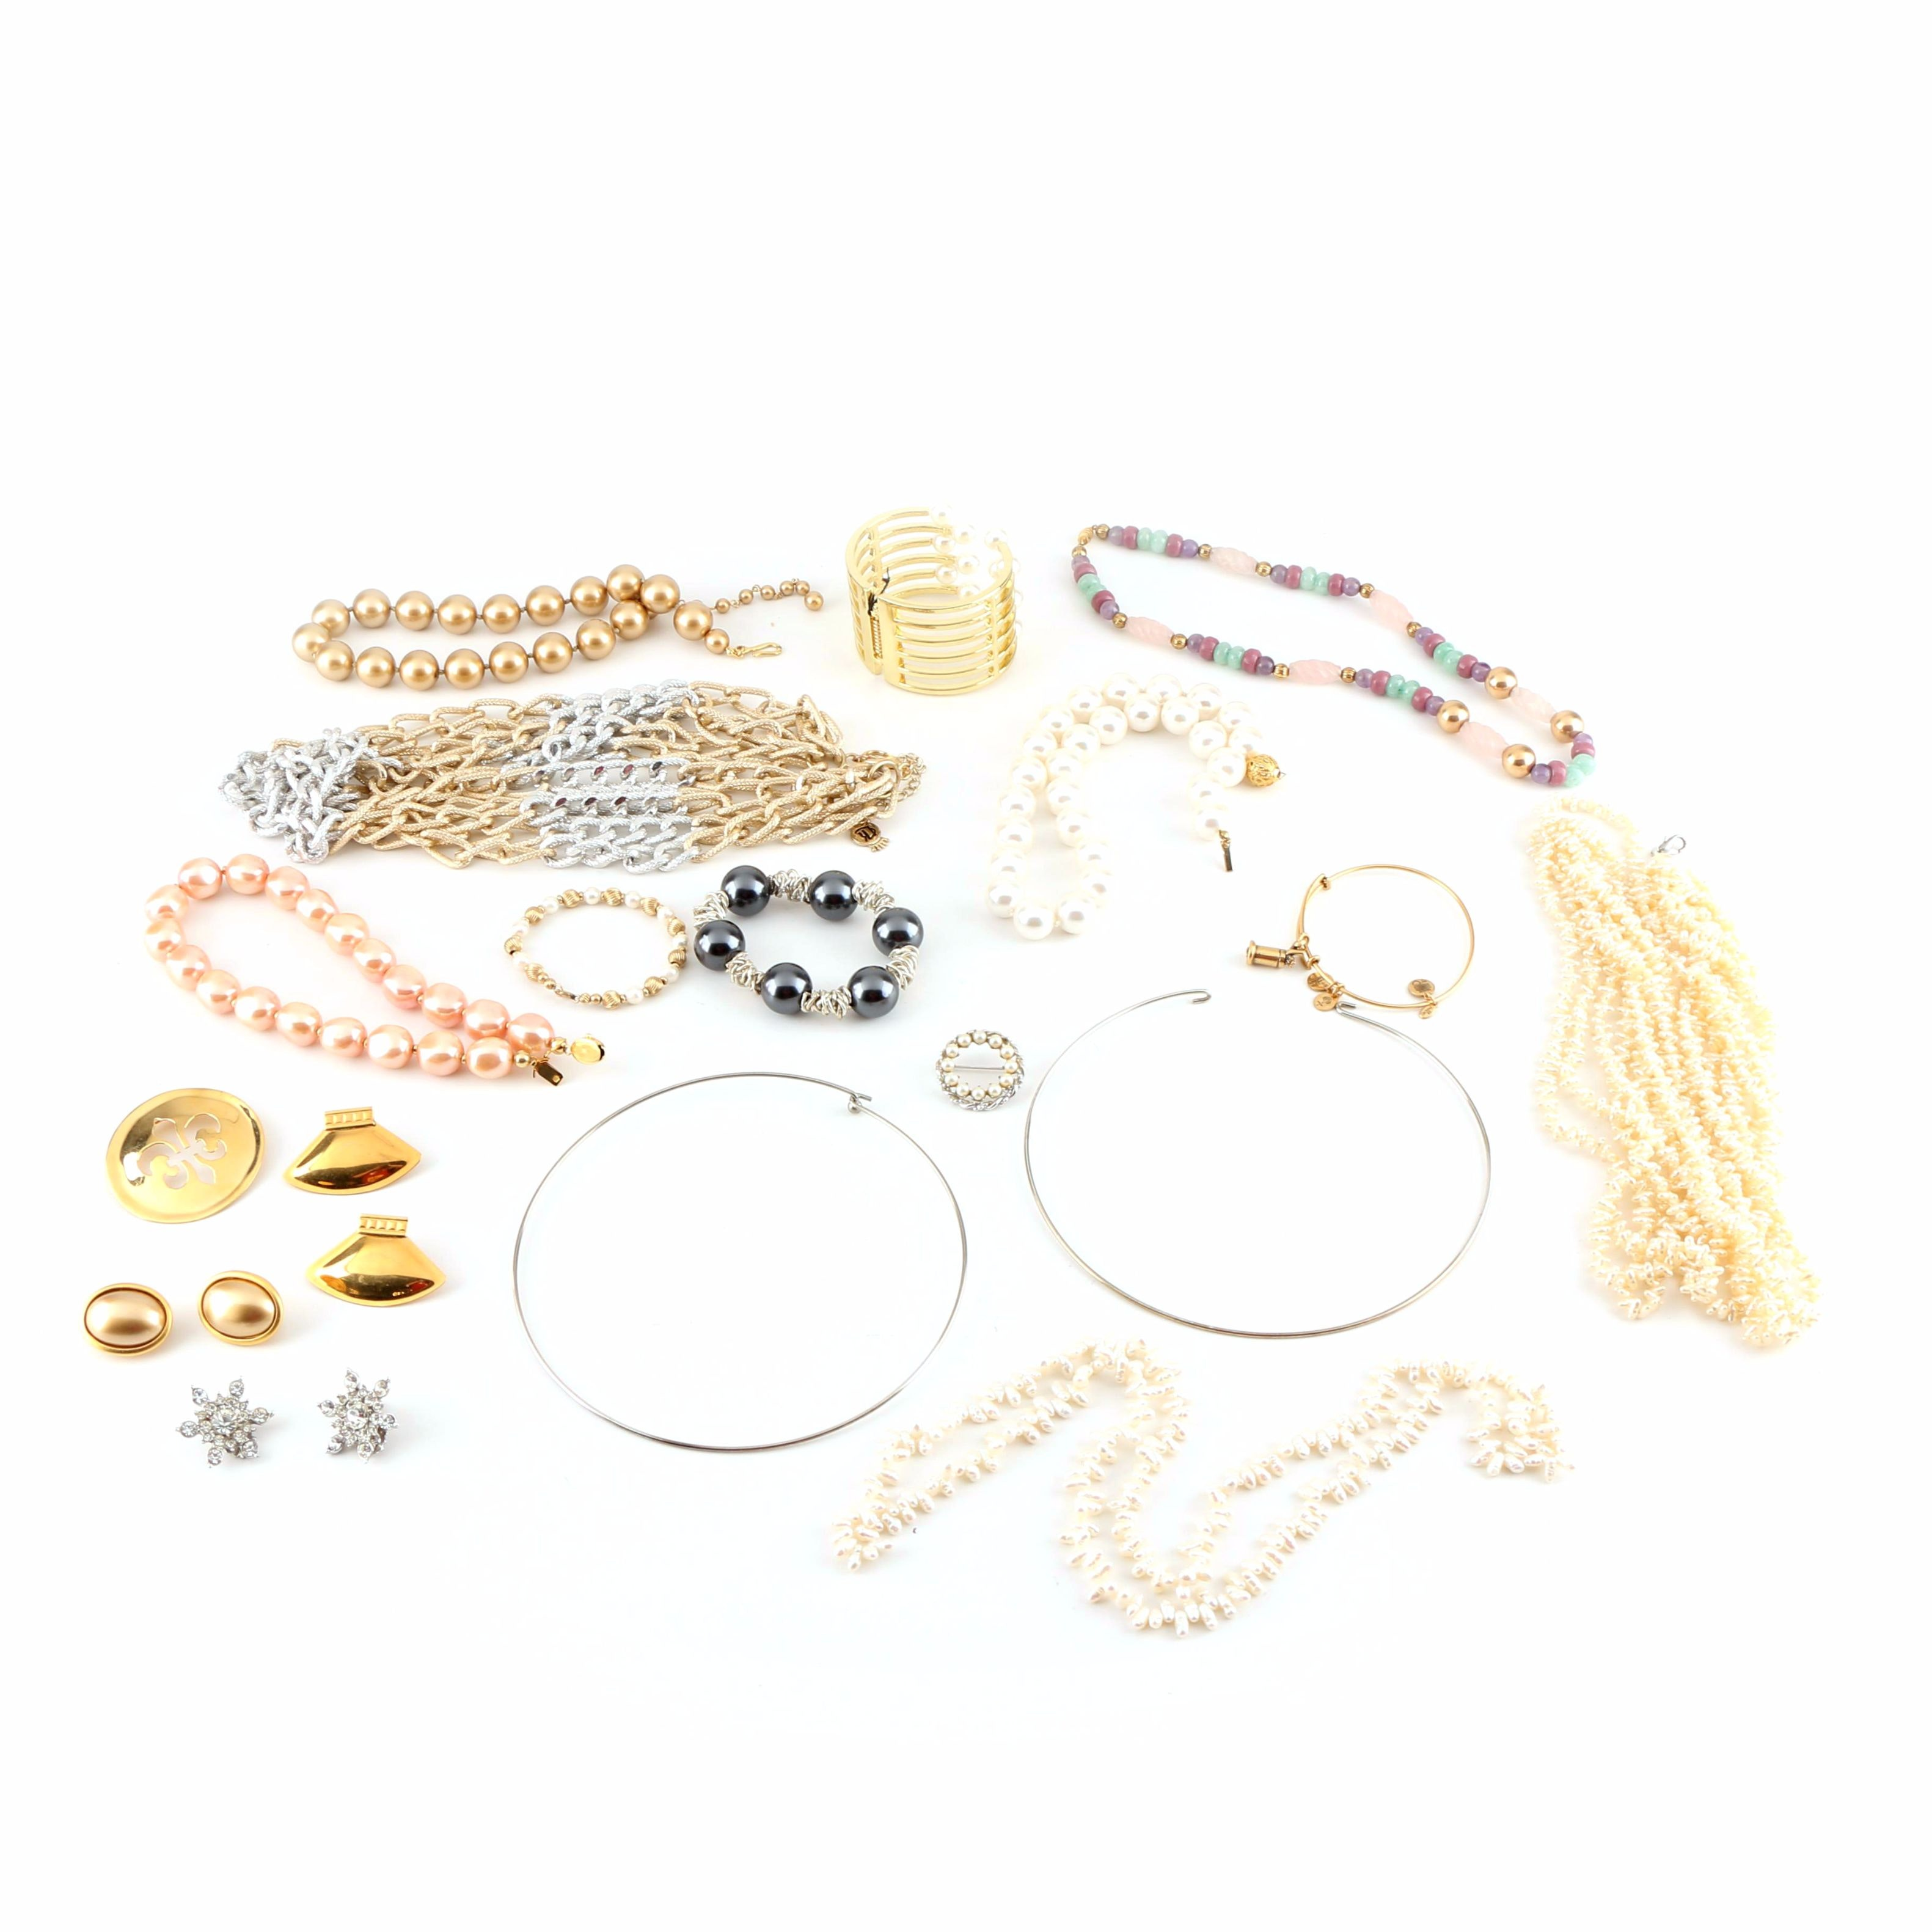 Assortment of Costume Jewelry Featuring Gemstones